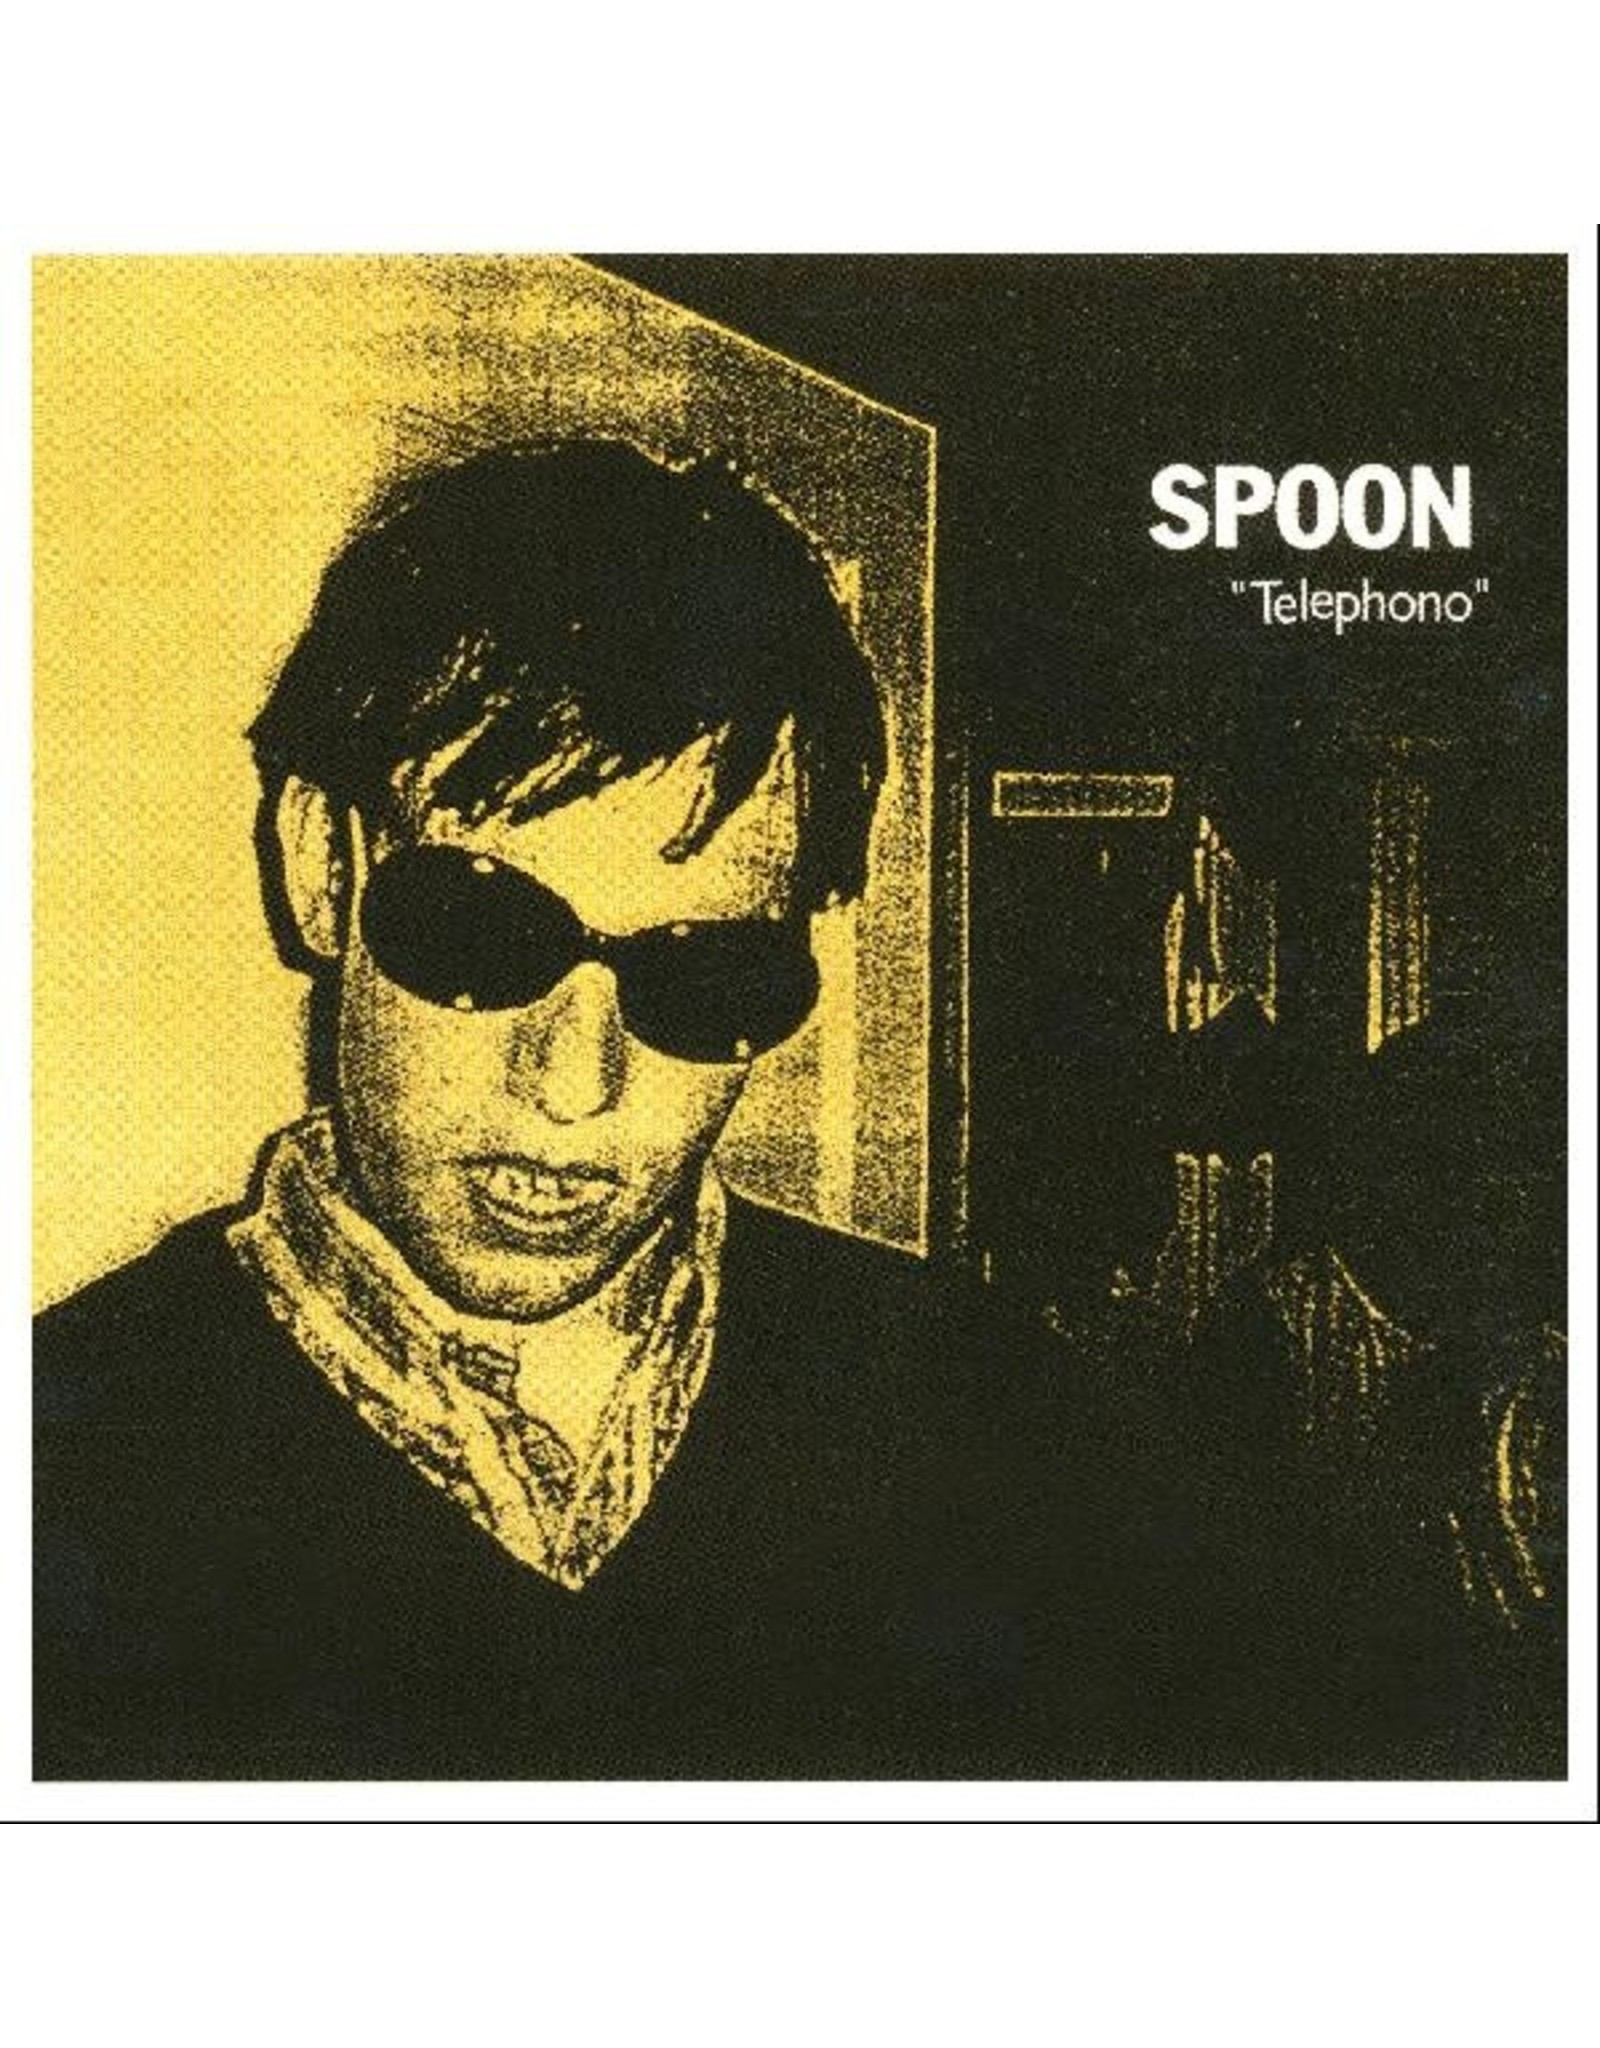 New Vinyl Spoon - Telephono LP